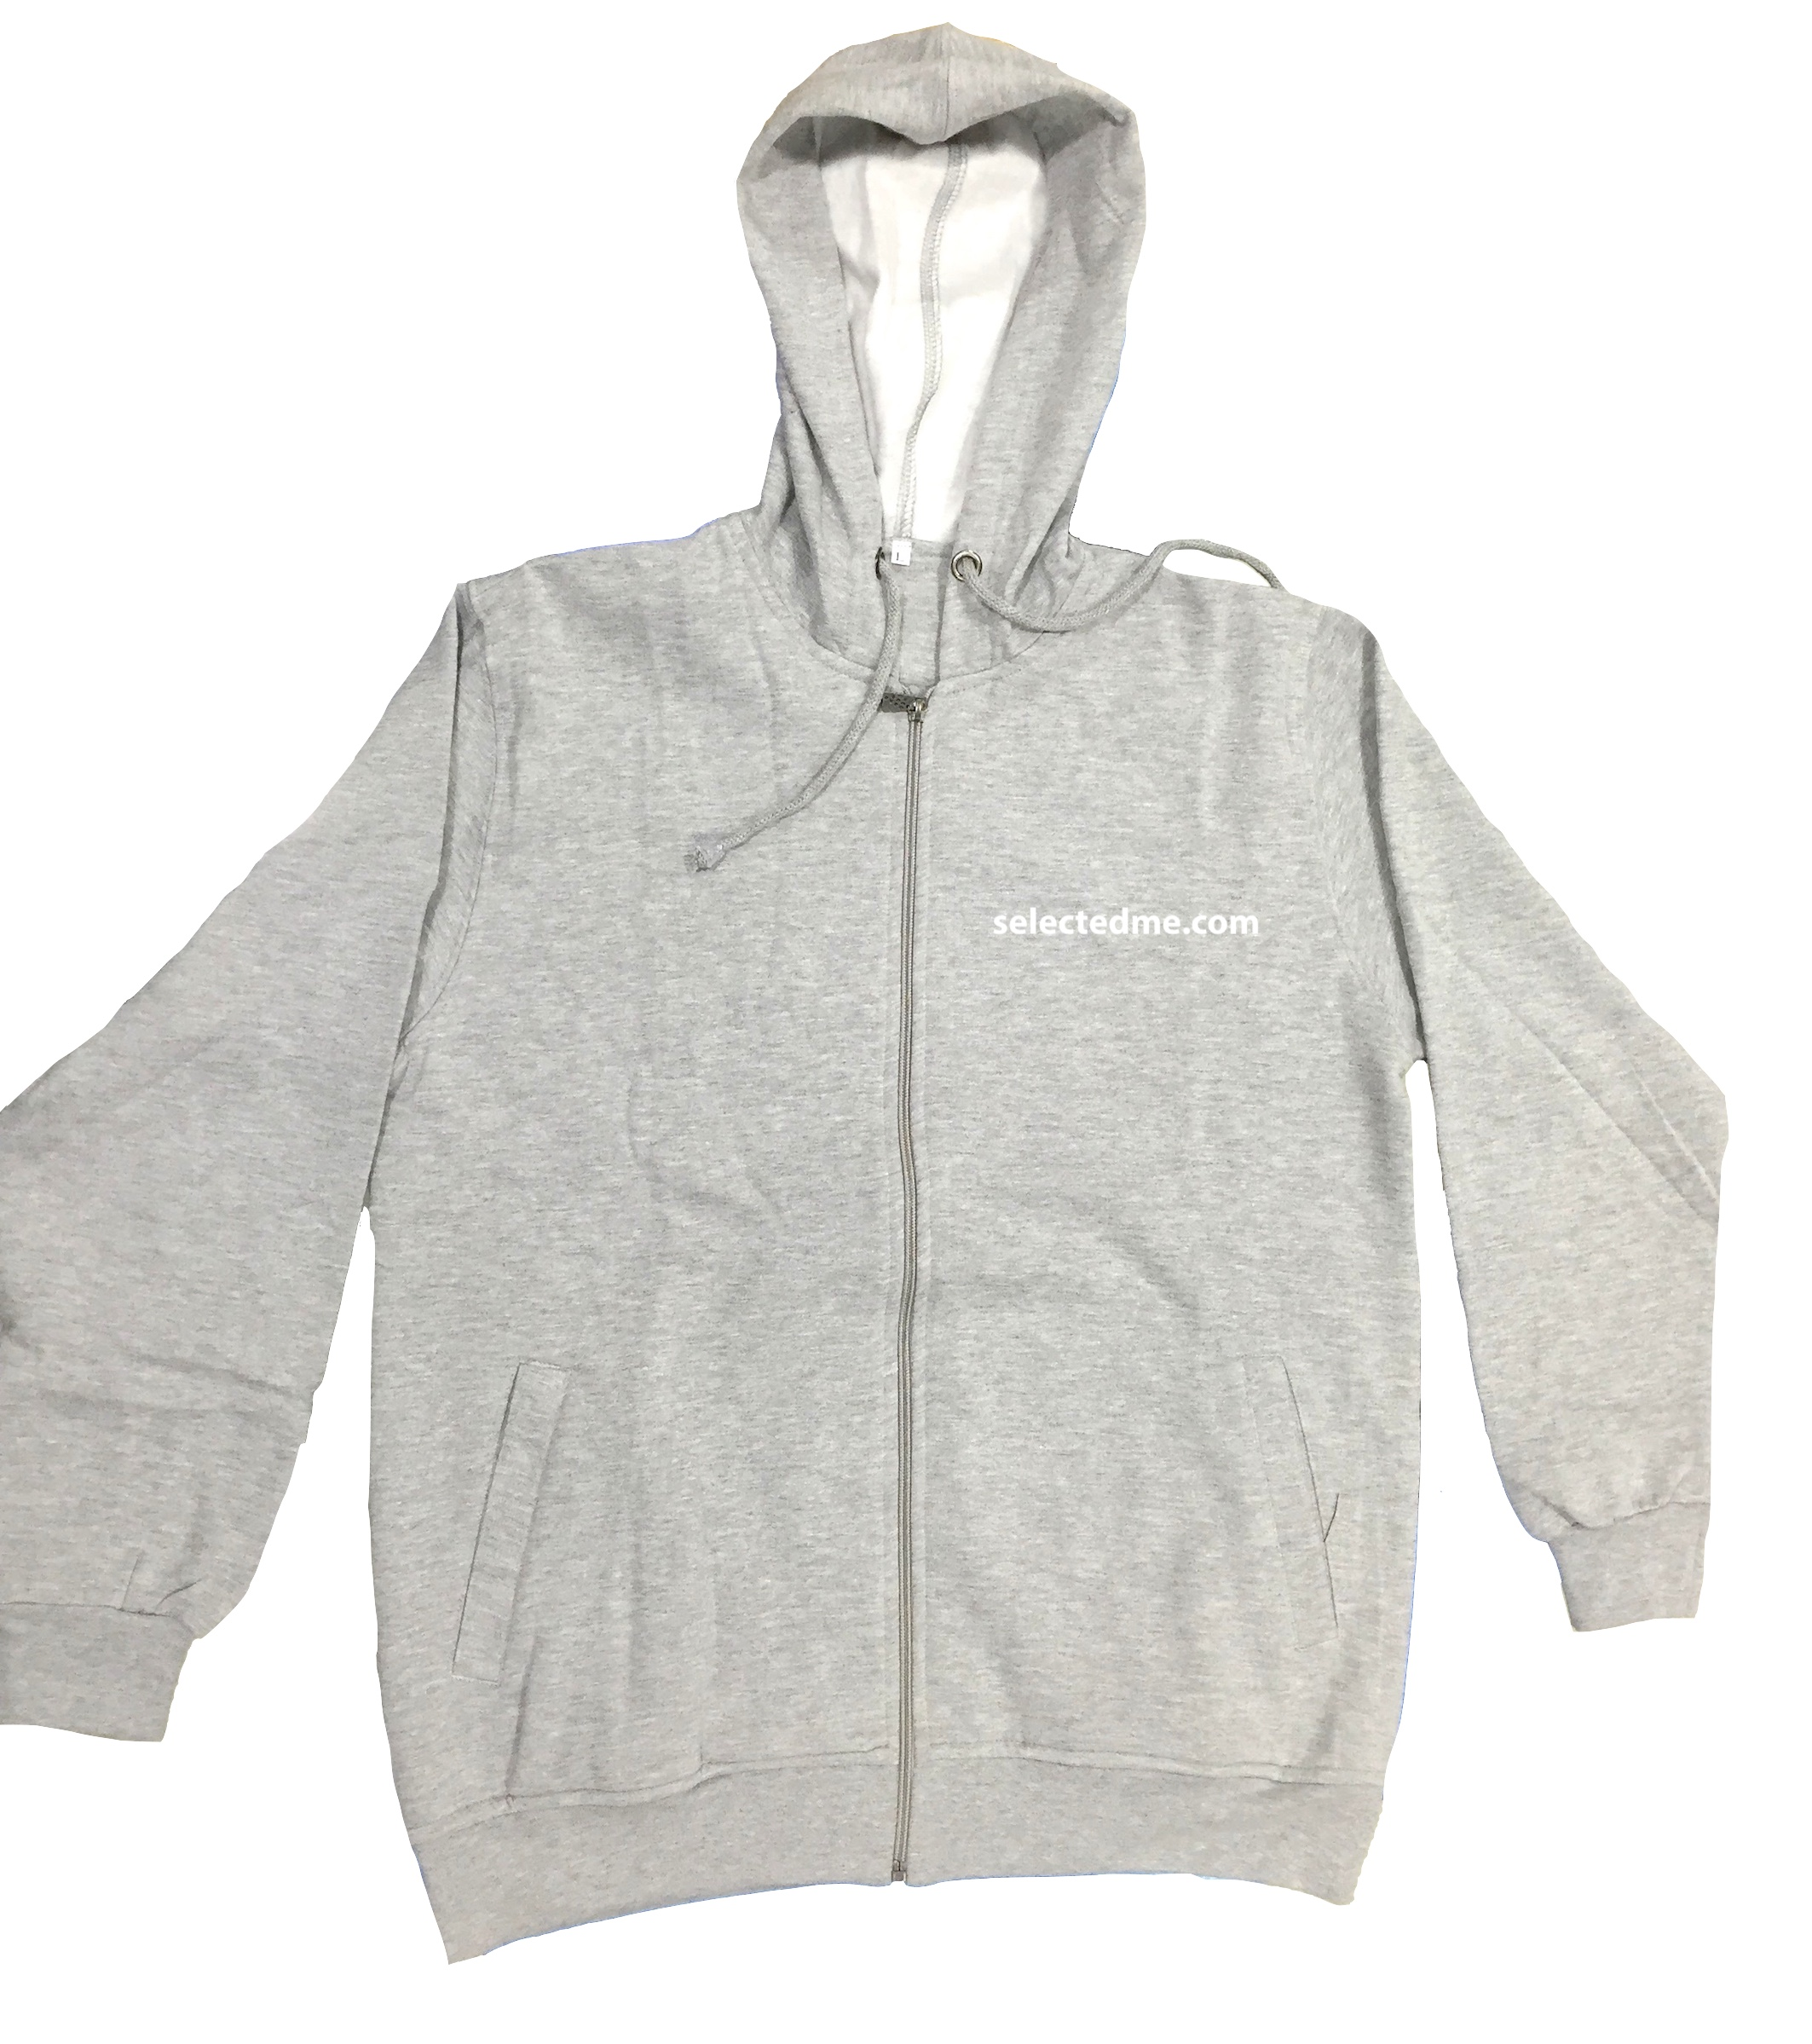 Sweat Shirt - Hoody Jacket with zipper Long sleeved